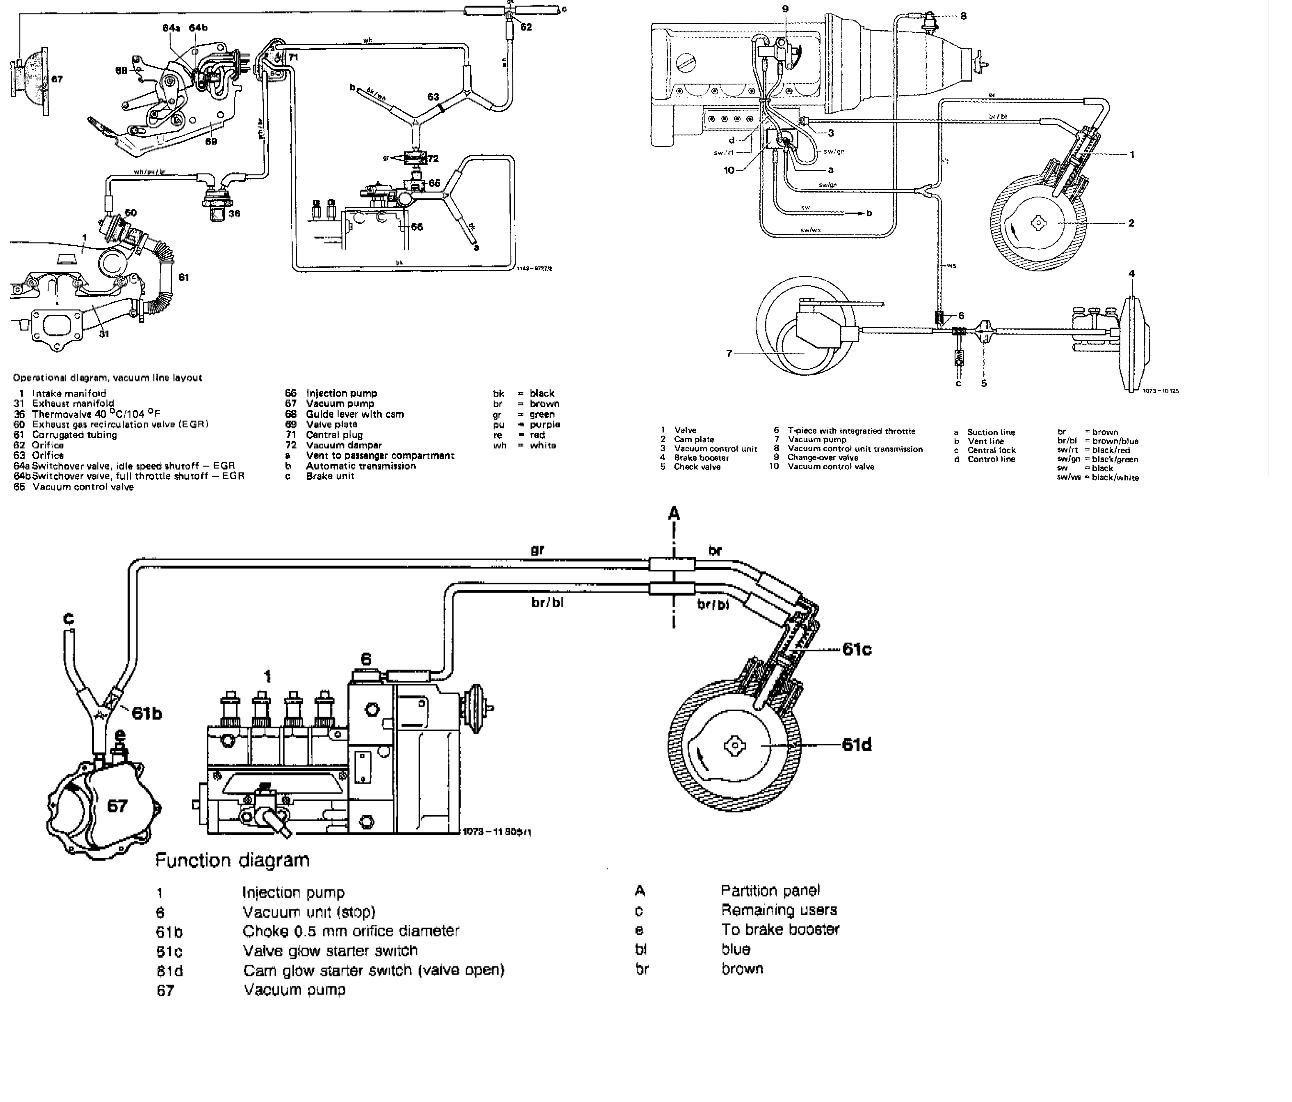 1984 mercedes 300d vacuum diagram